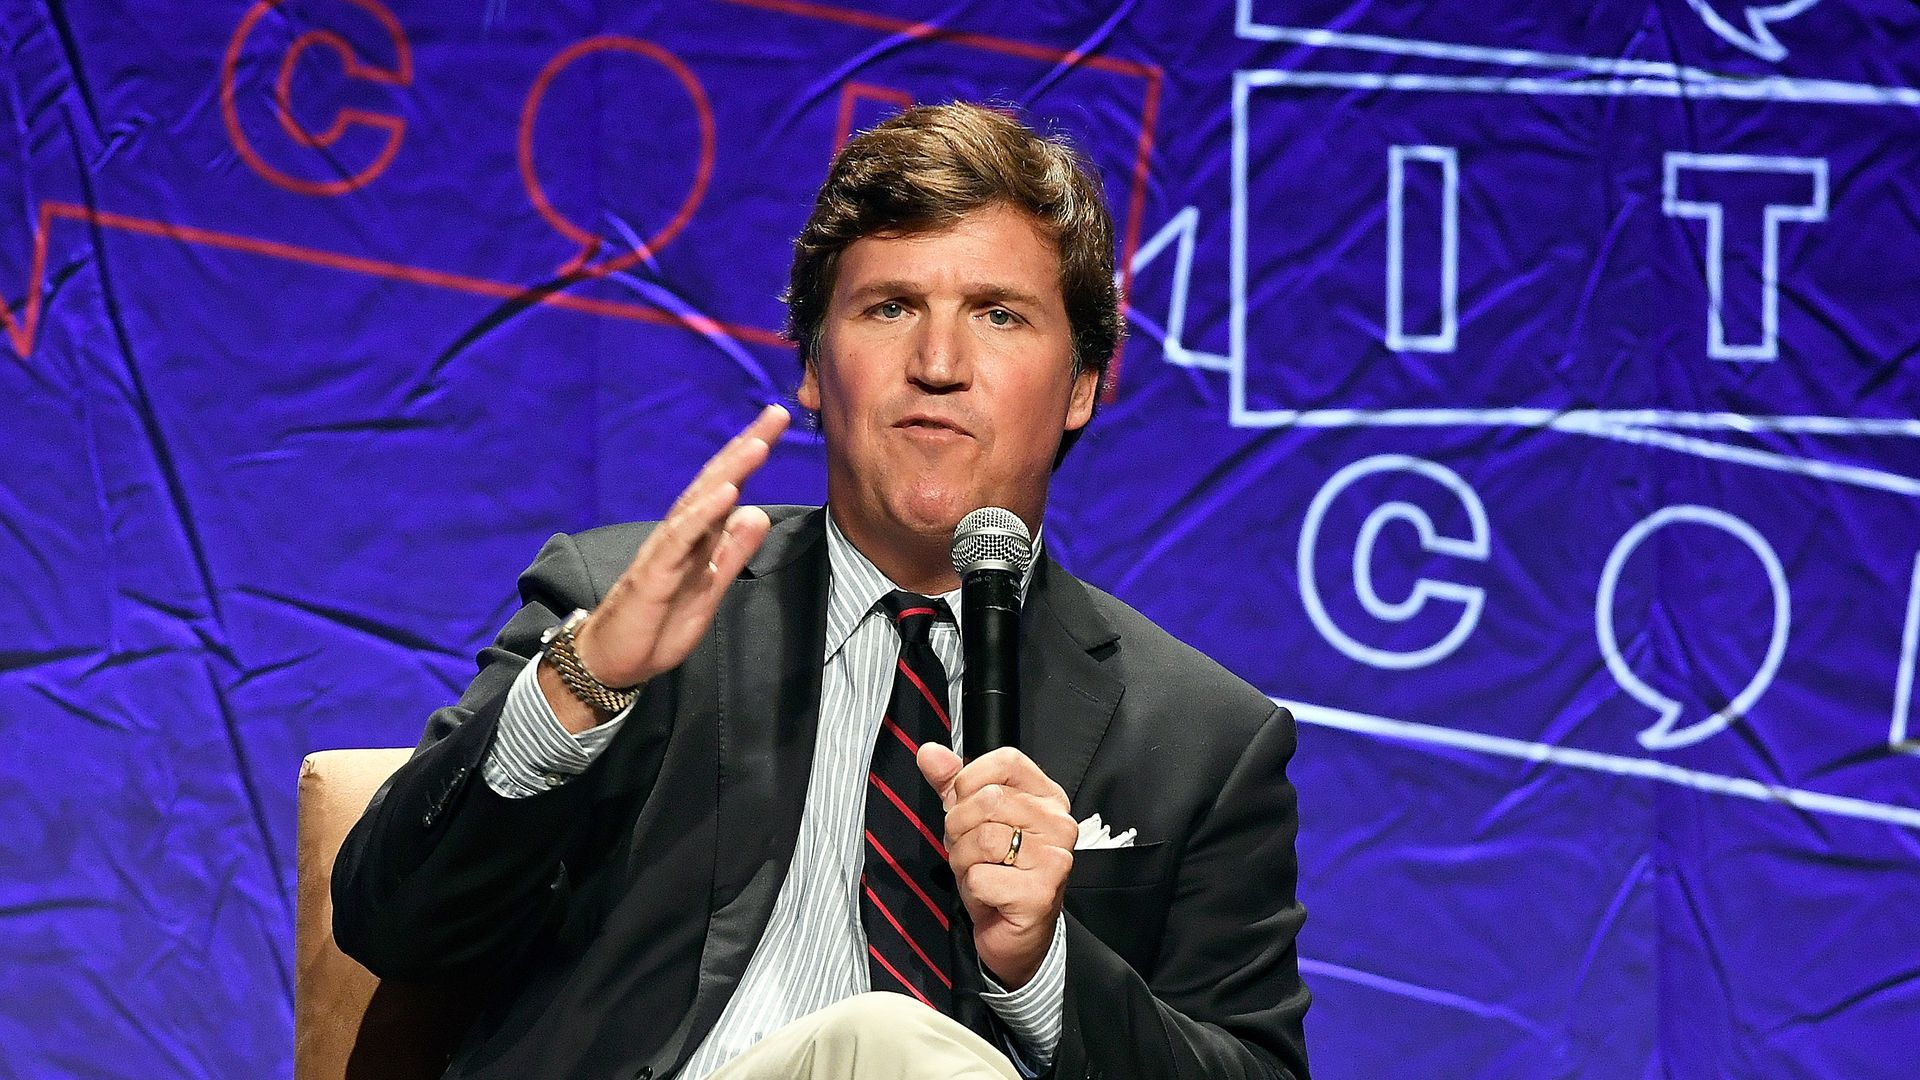 Tucker Carlson hasn't apologized for his past remarks on women.